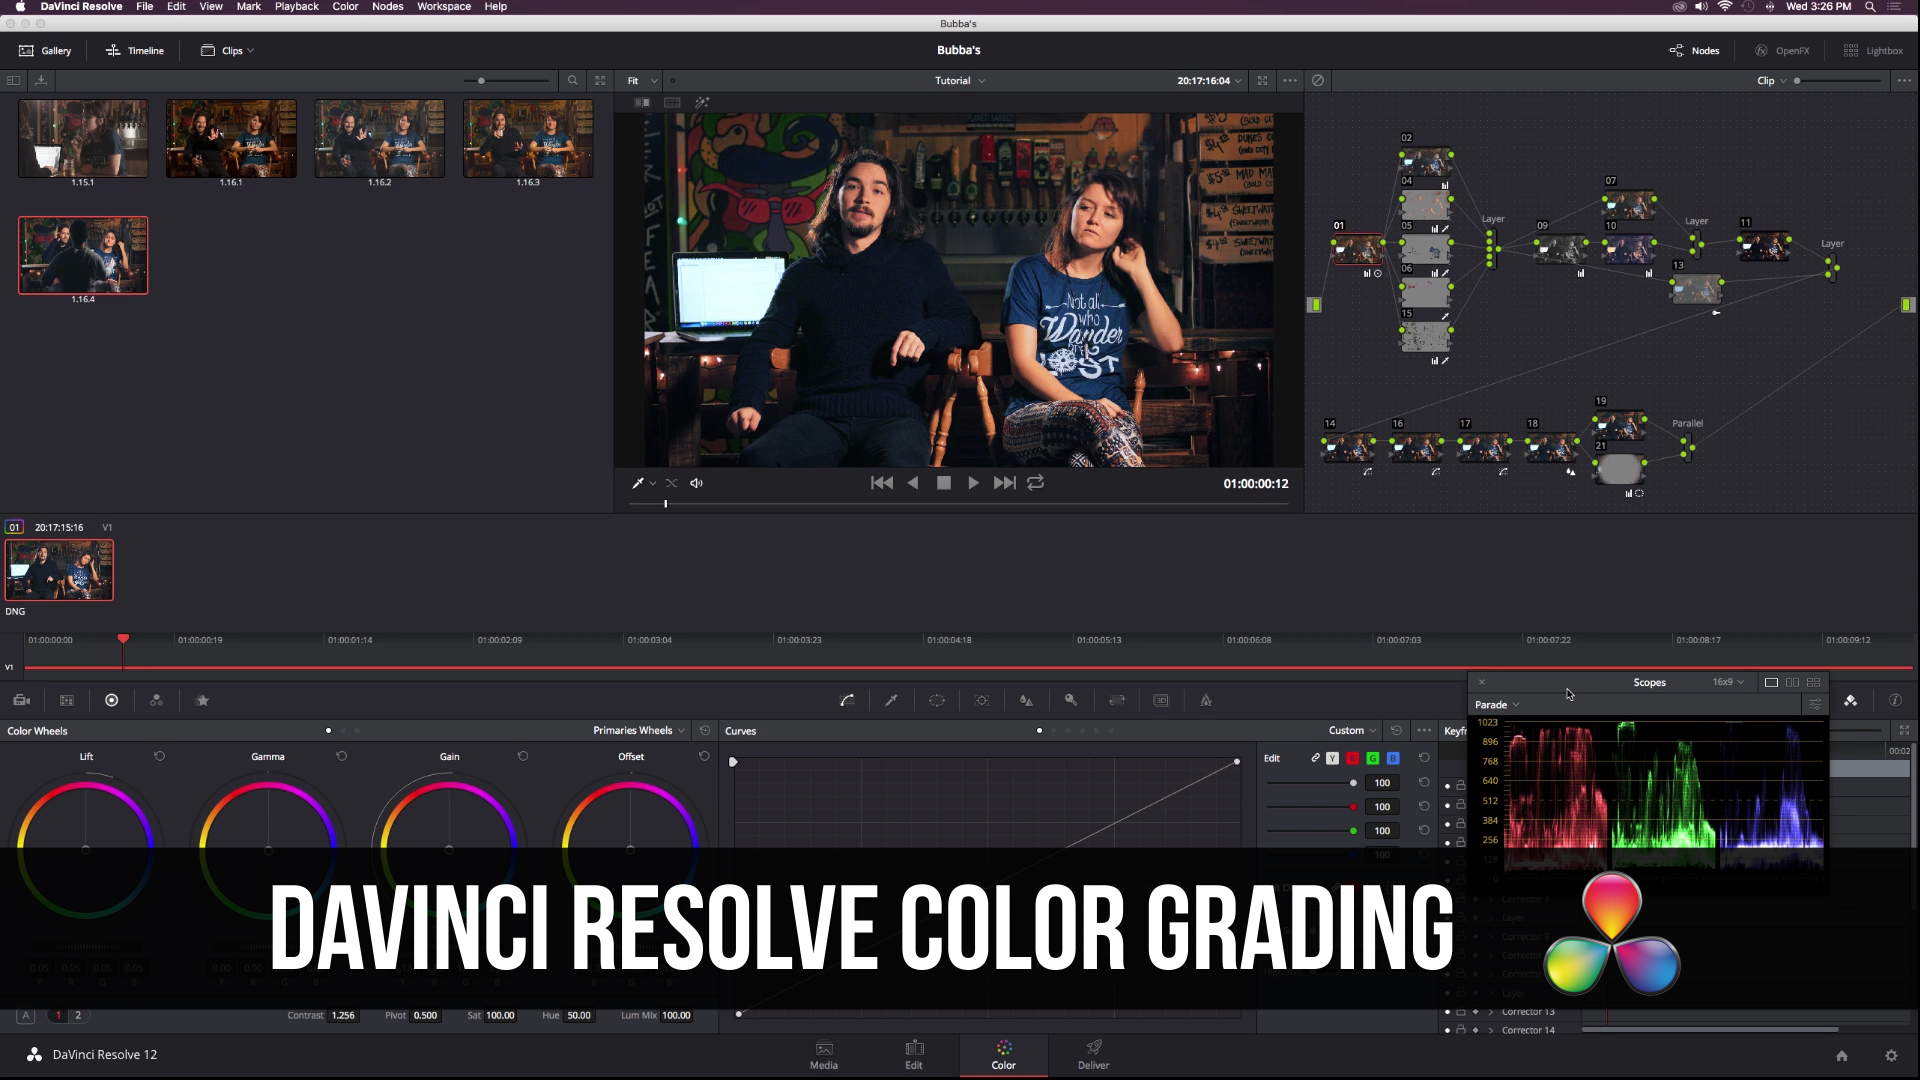 DaVinci Resolve 12 Advanced Color Grading